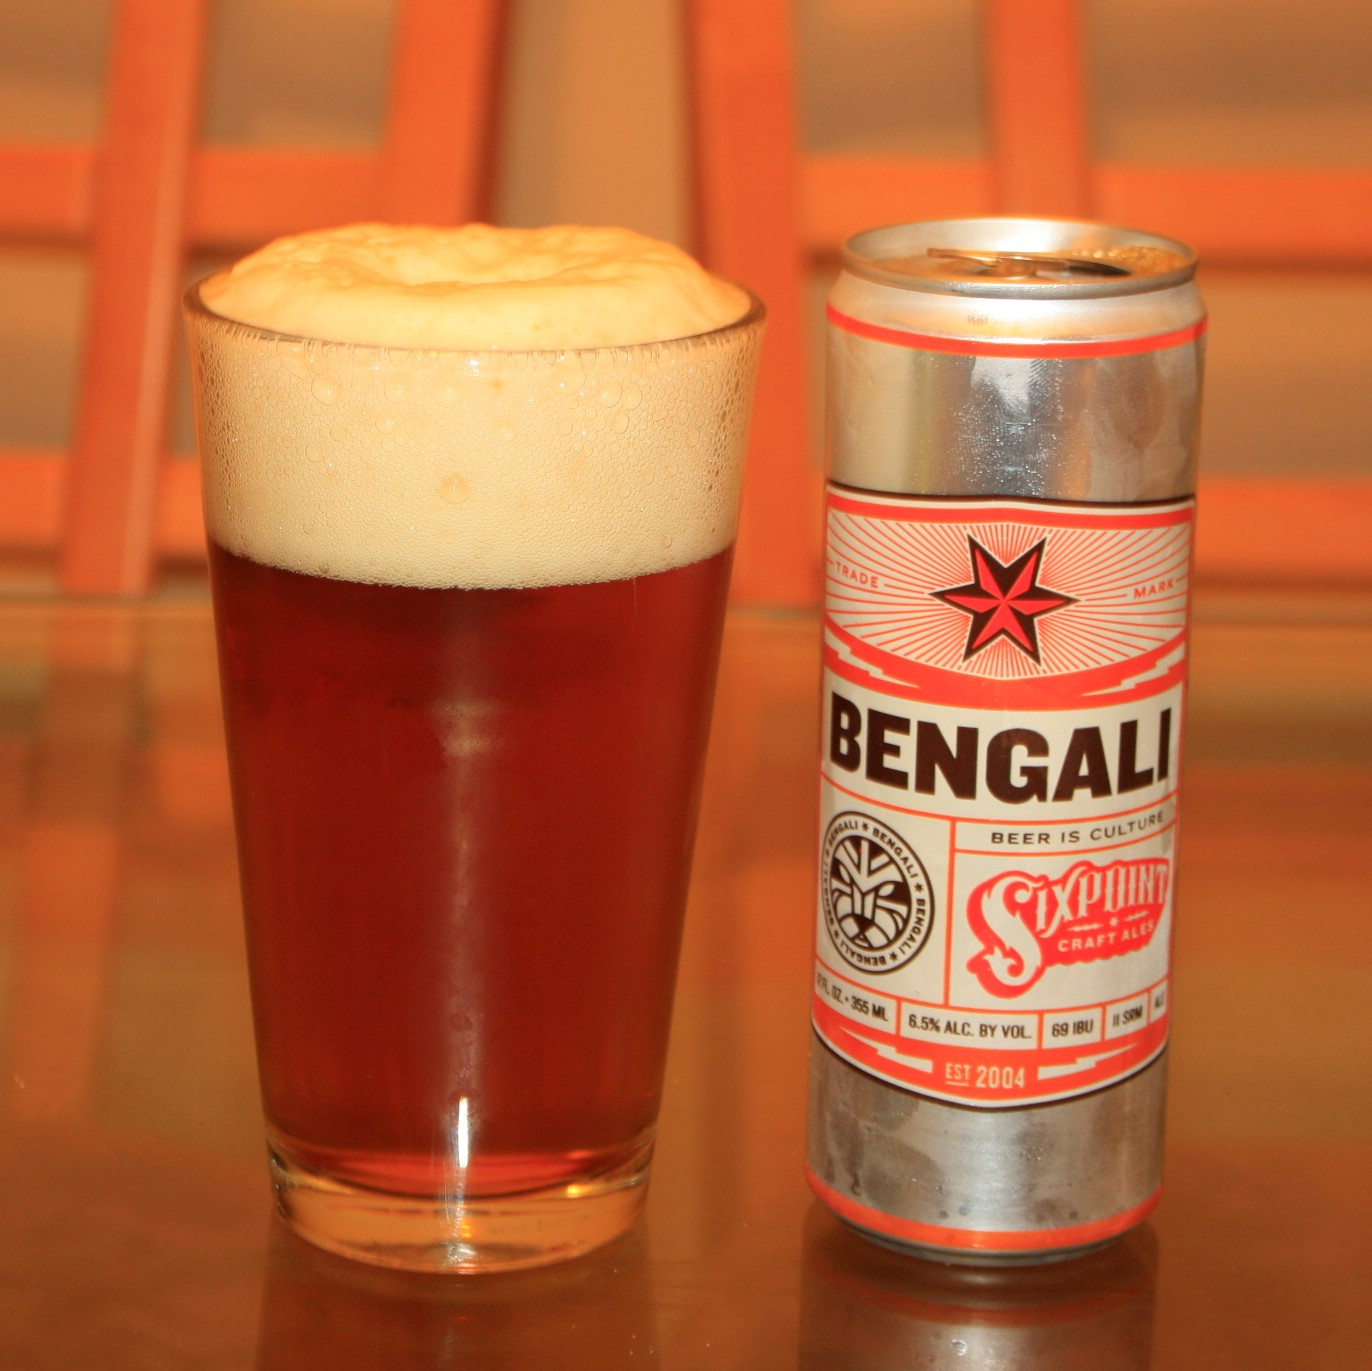 Nick's Beer Blog: Sixpoint Bengali Review